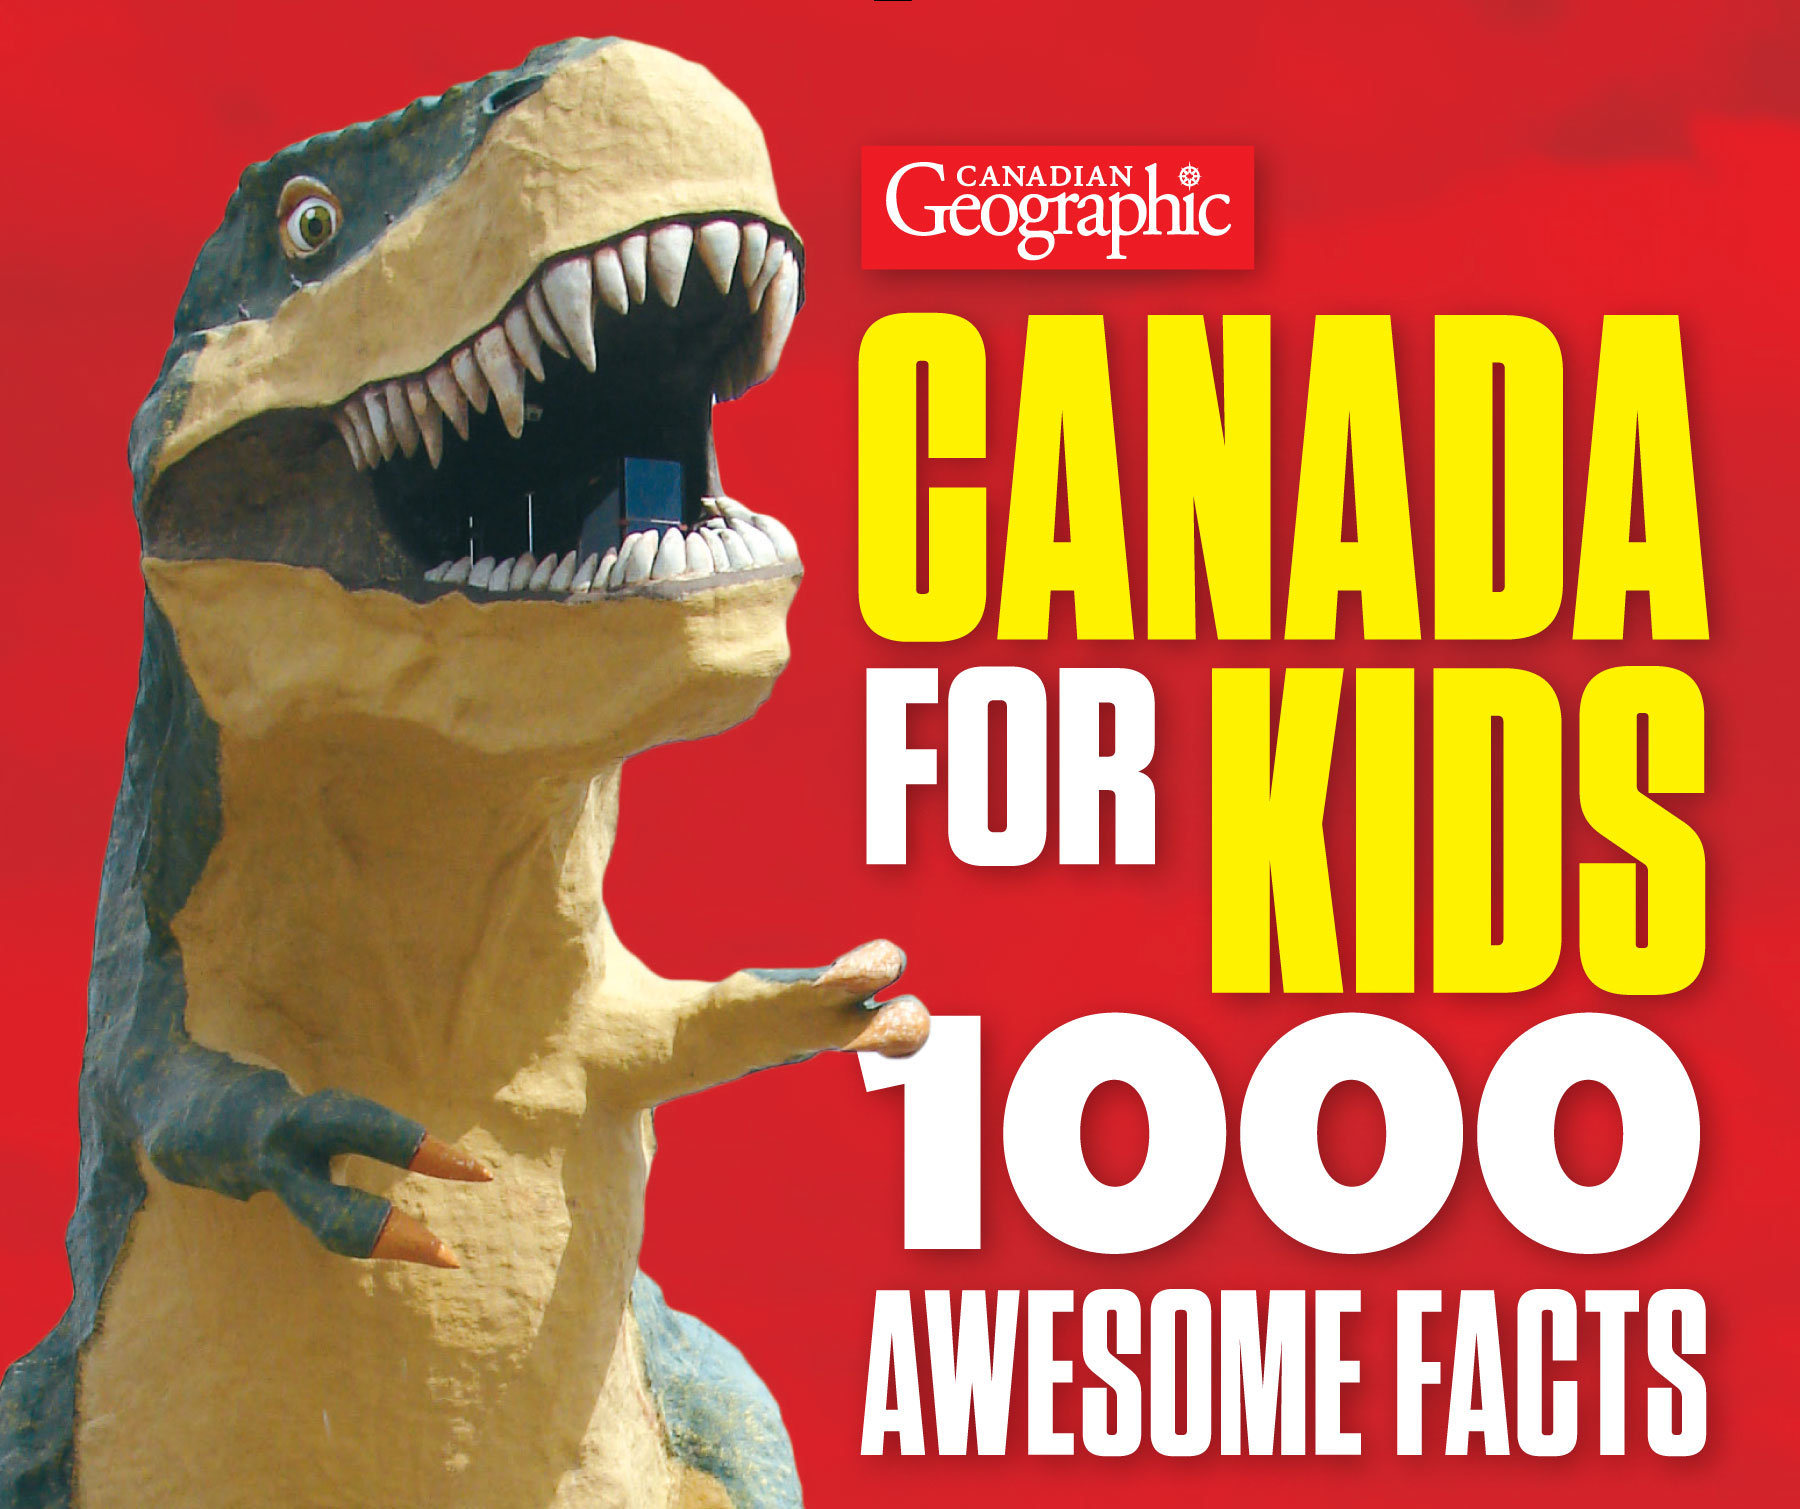 Canada Facts 25 Amazing Facts about Canada. Here on this page about Canada Facts you will find 25 fascinating facts and interesting information - not only for kids but for all who want to know more about this wonderful country.